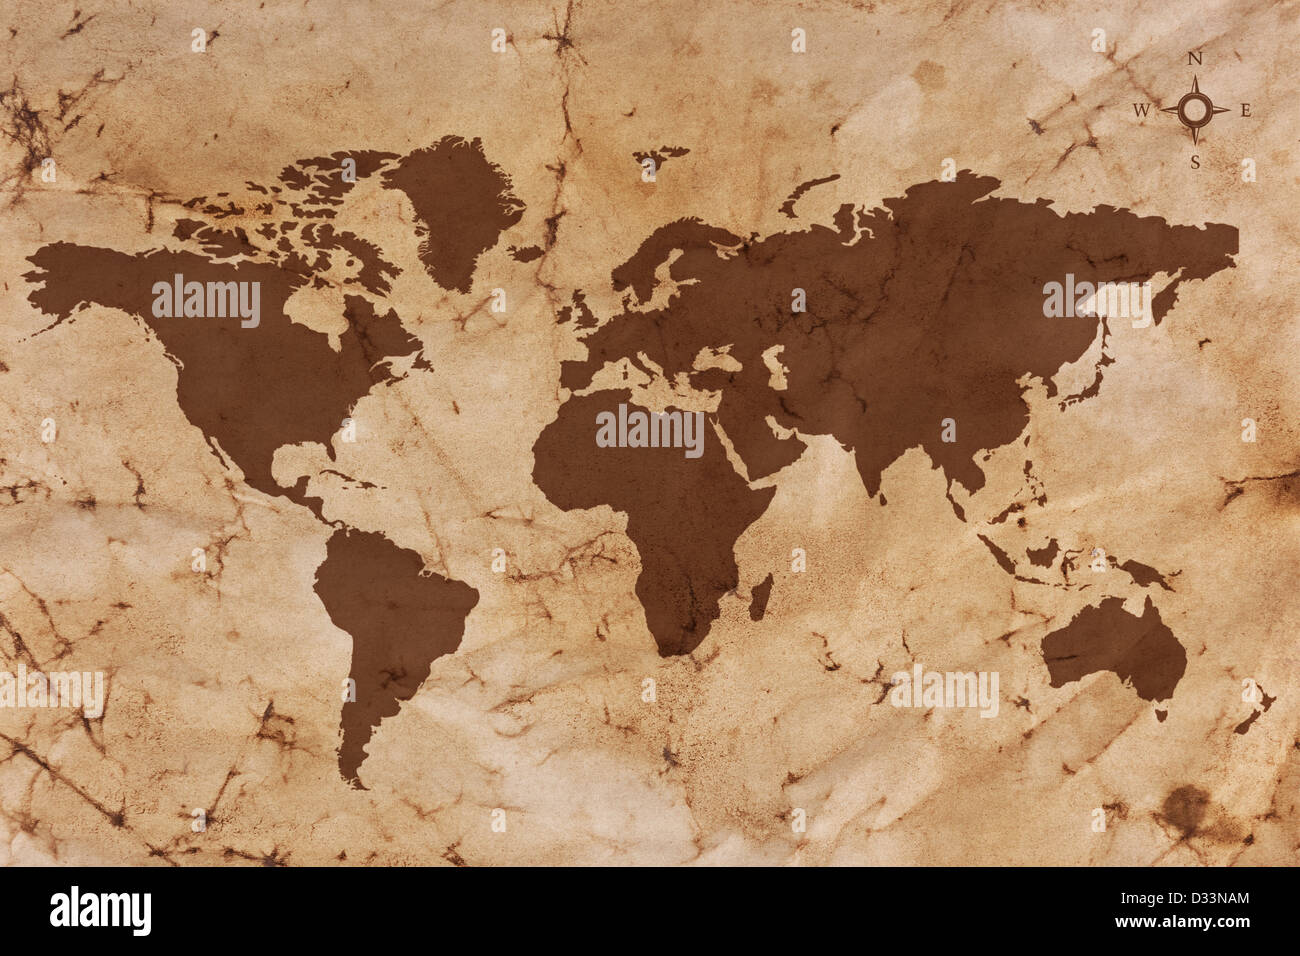 Old World map on creased and stained sepia coloured parchment paper. - Stock Image